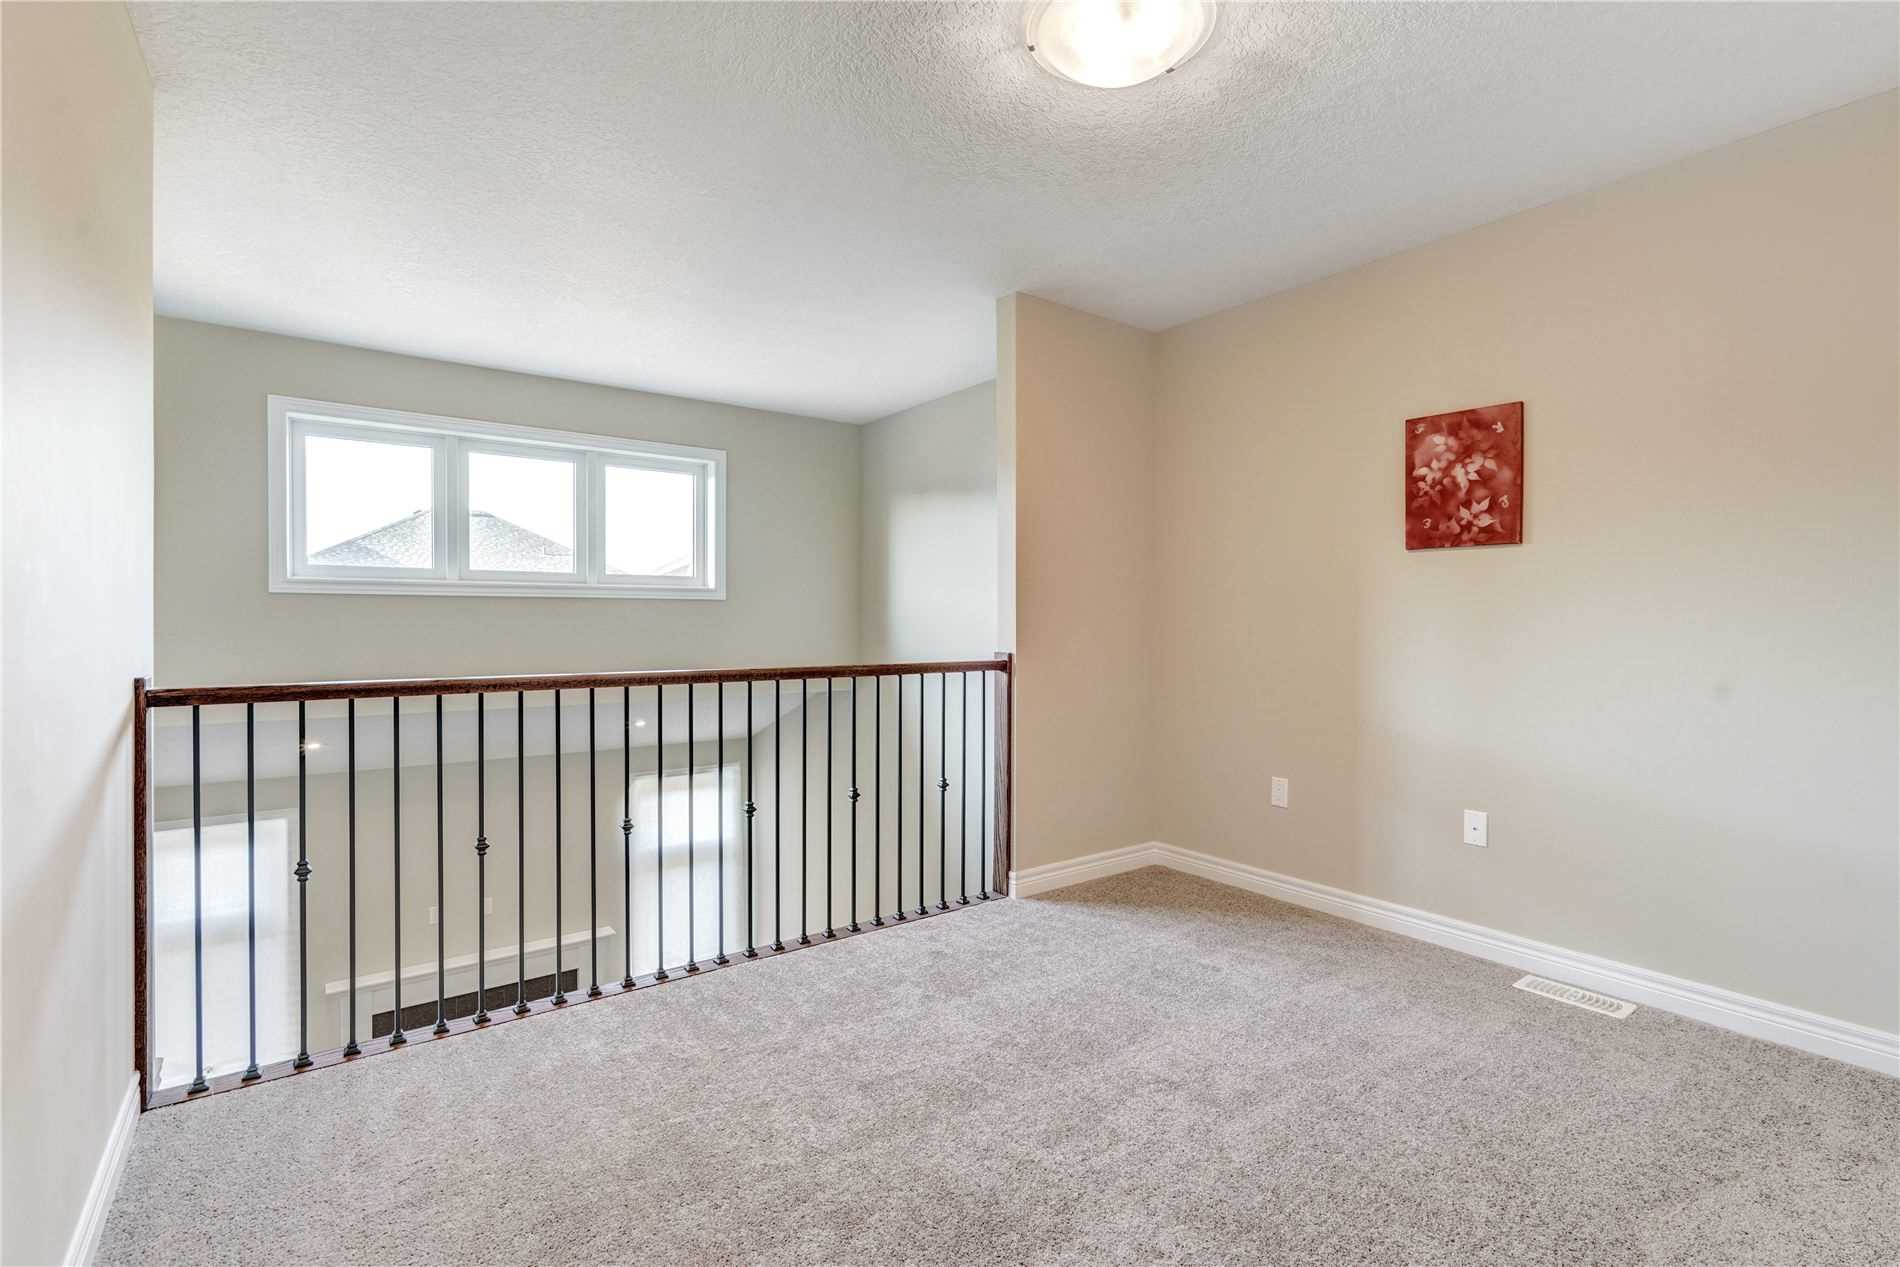 Image 9 of 19 showing inside of 4 Bedroom Detached 2-Storey house for sale at 4 Stuckey Lane, East Luther Grand Valley L0N1G0